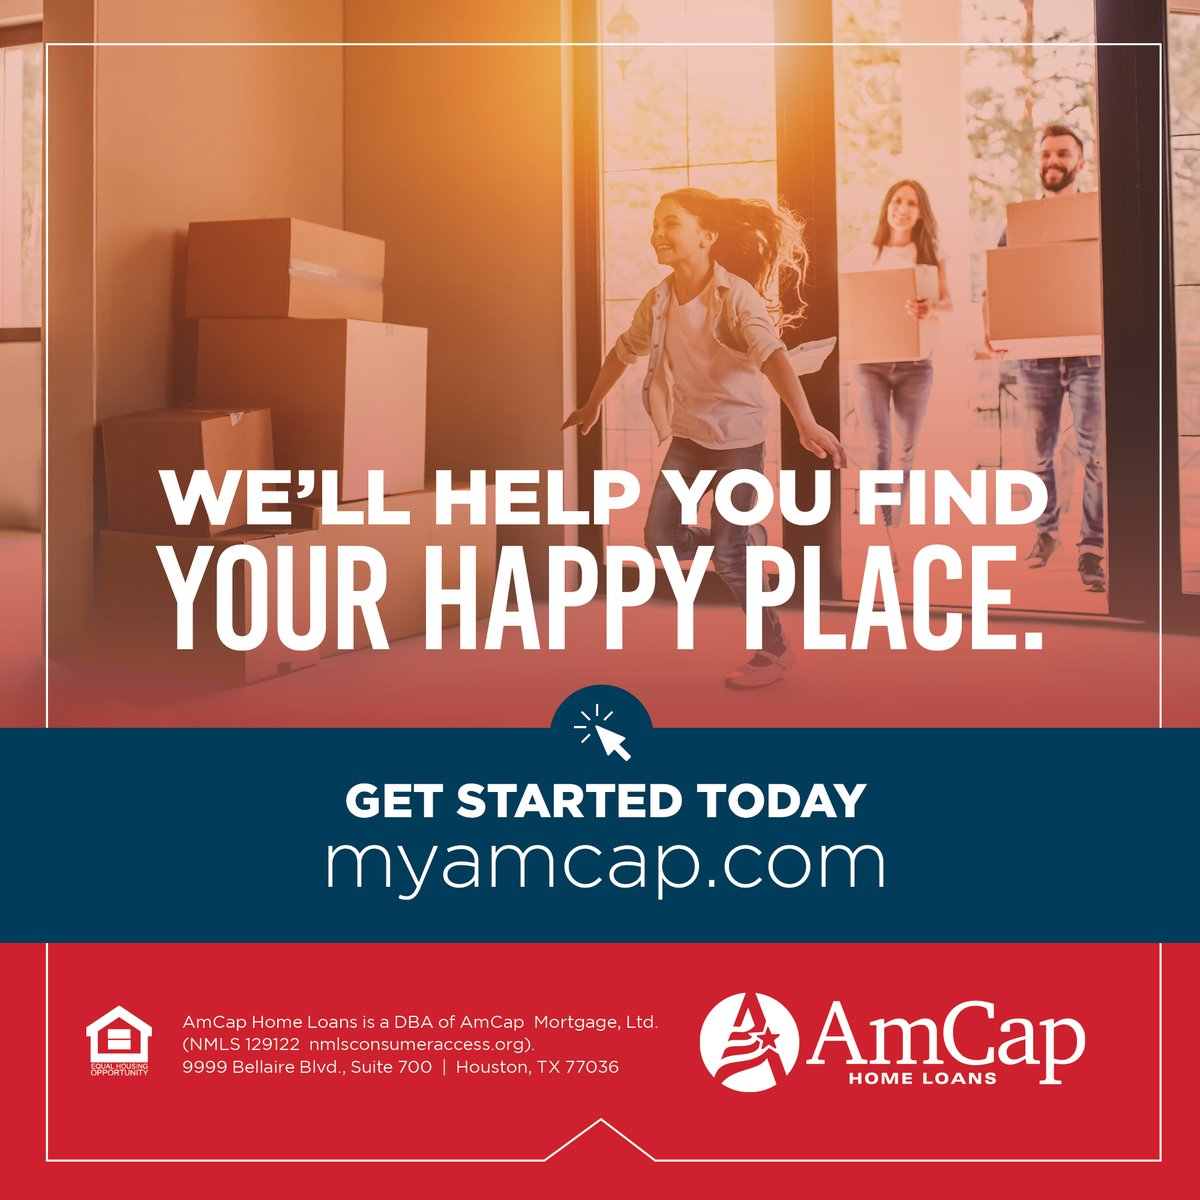 No jokes here! Let's find your happy place together ☺️ Visit  today. . . #myamcap #home #loans #mortgage #rates #dreamhouse #dreambuying #dreambig #wednesdaywisdom #wednesdaythoughts #happyplace #aprilfoolsday #AprilFools #April1st